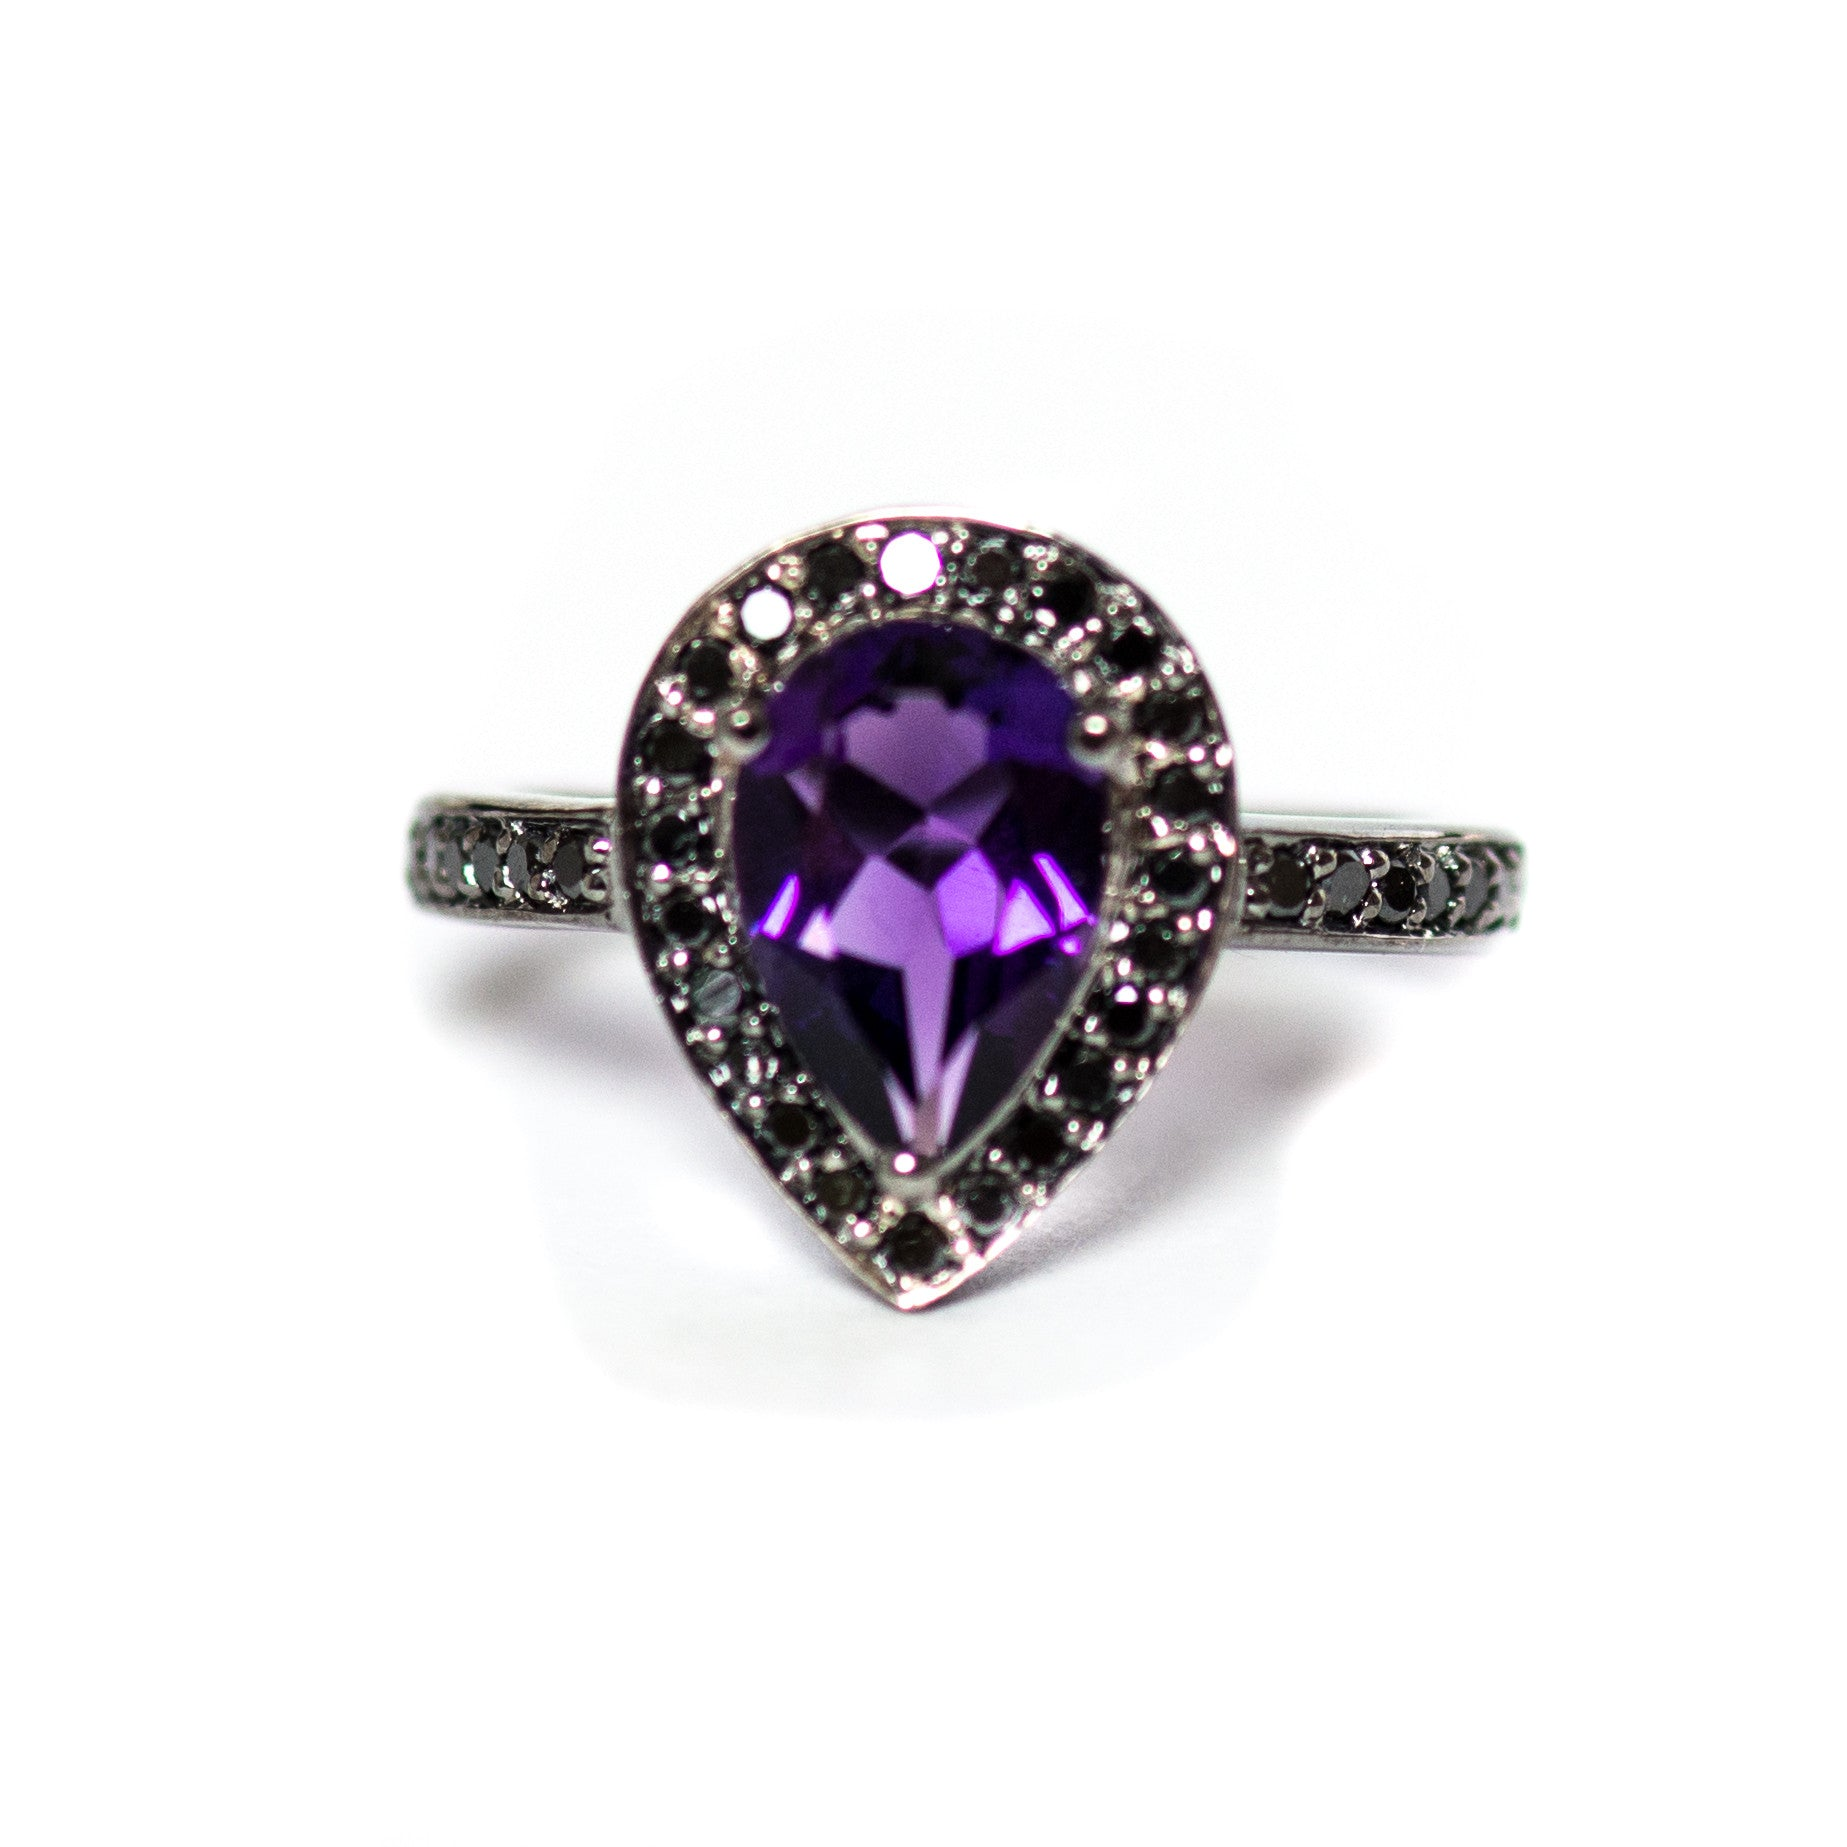 Amethyst pear and black diamond halo black gold alternative engagement ring - Choose your size CLICK HERE - Sarah Hughes - 4